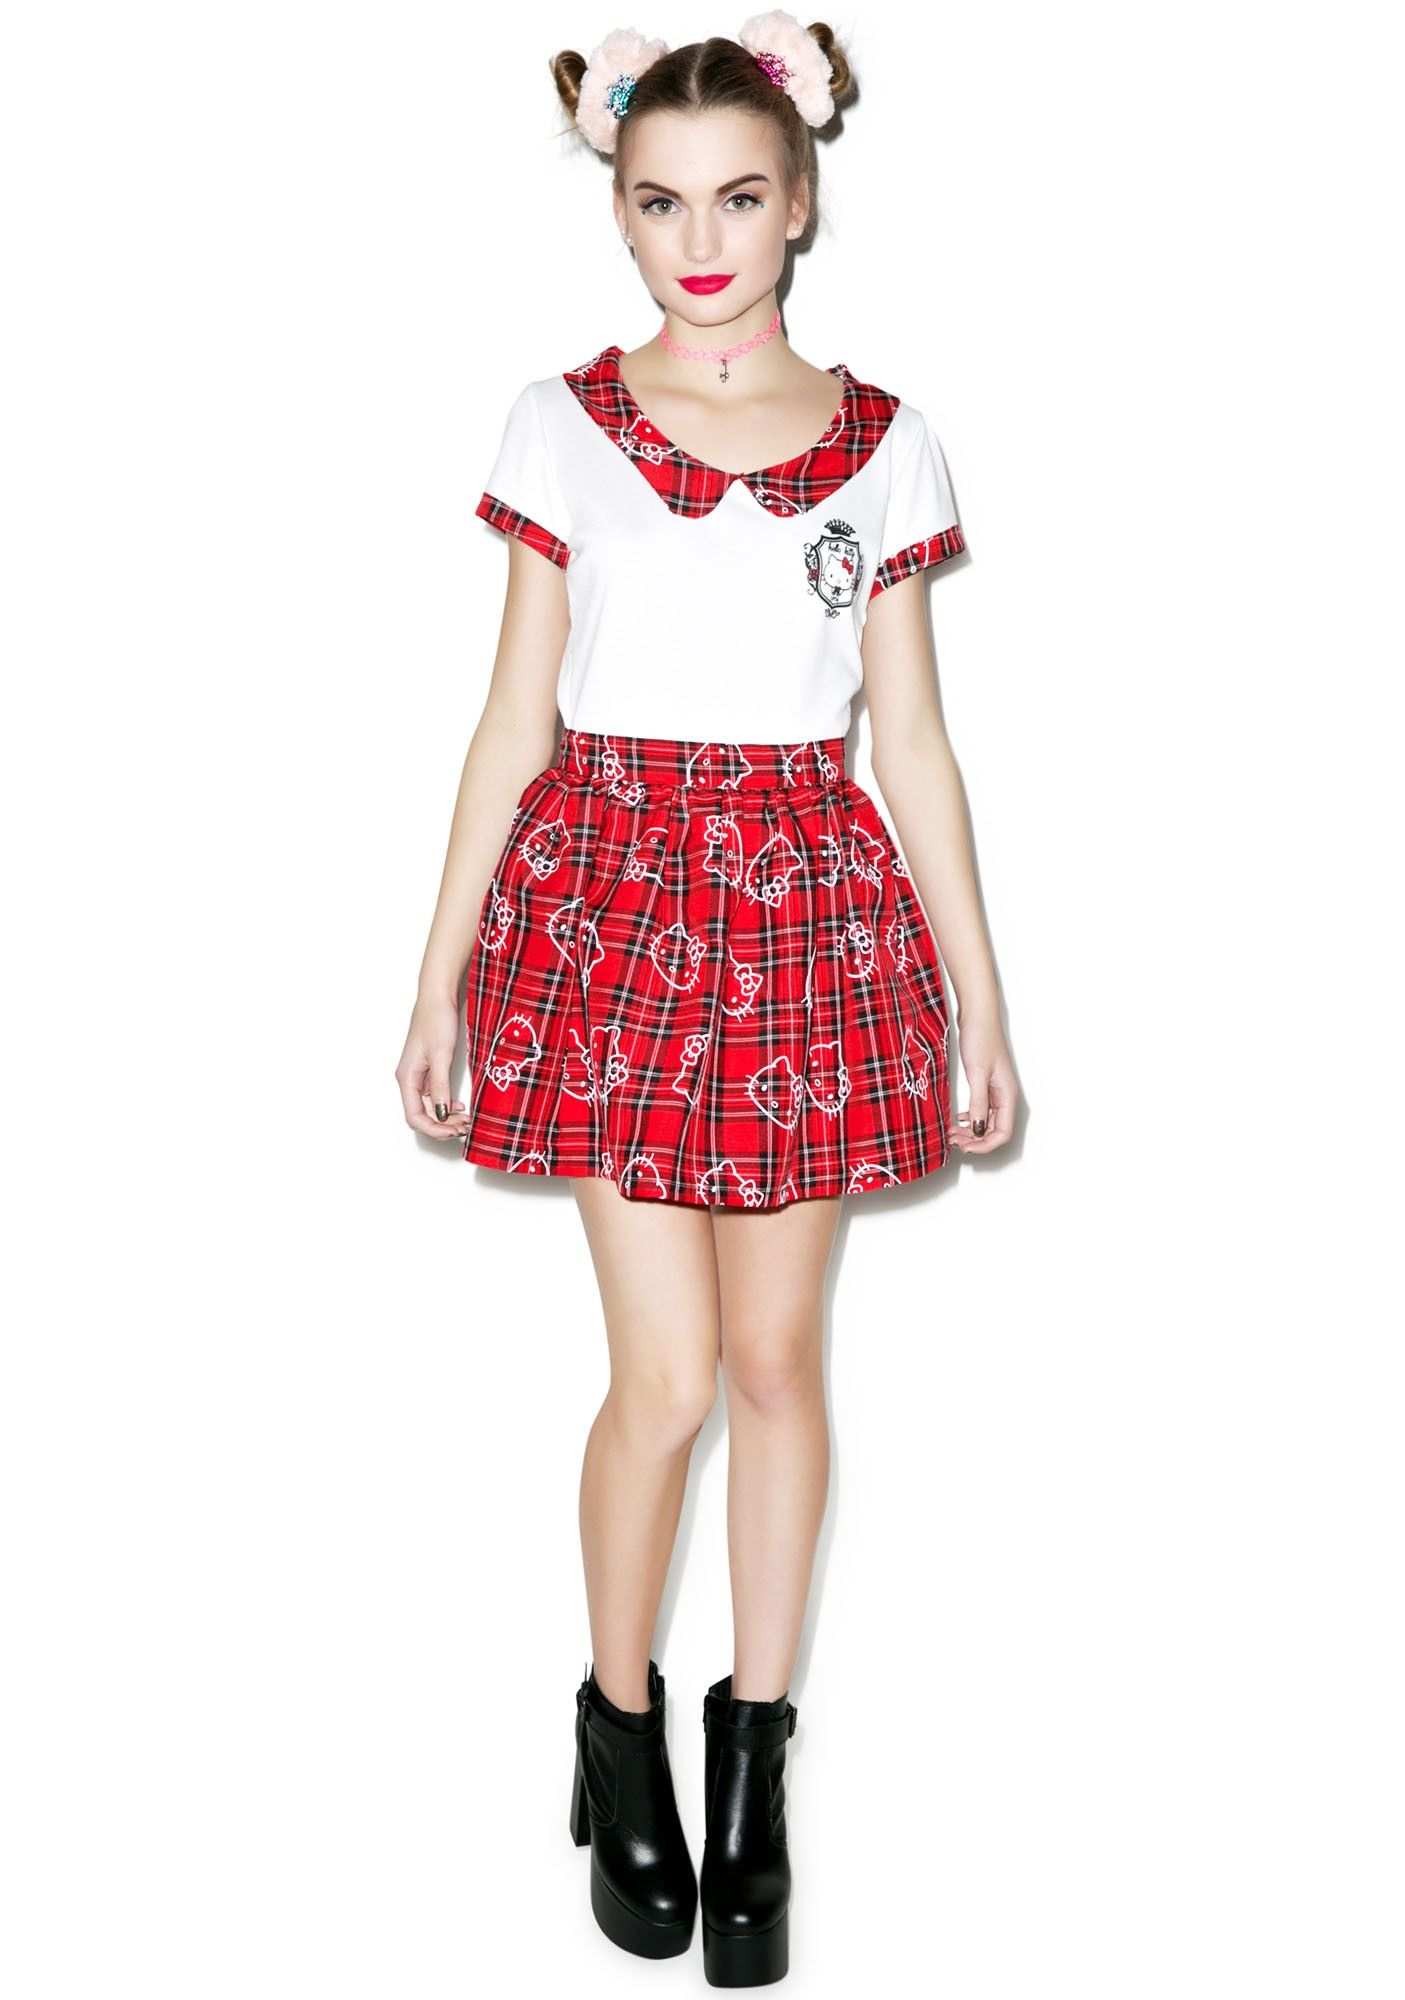 e7443223f Hello Kitty School Girl Top | HELLO KITTY/SANRIO FAMILY | Hello ...